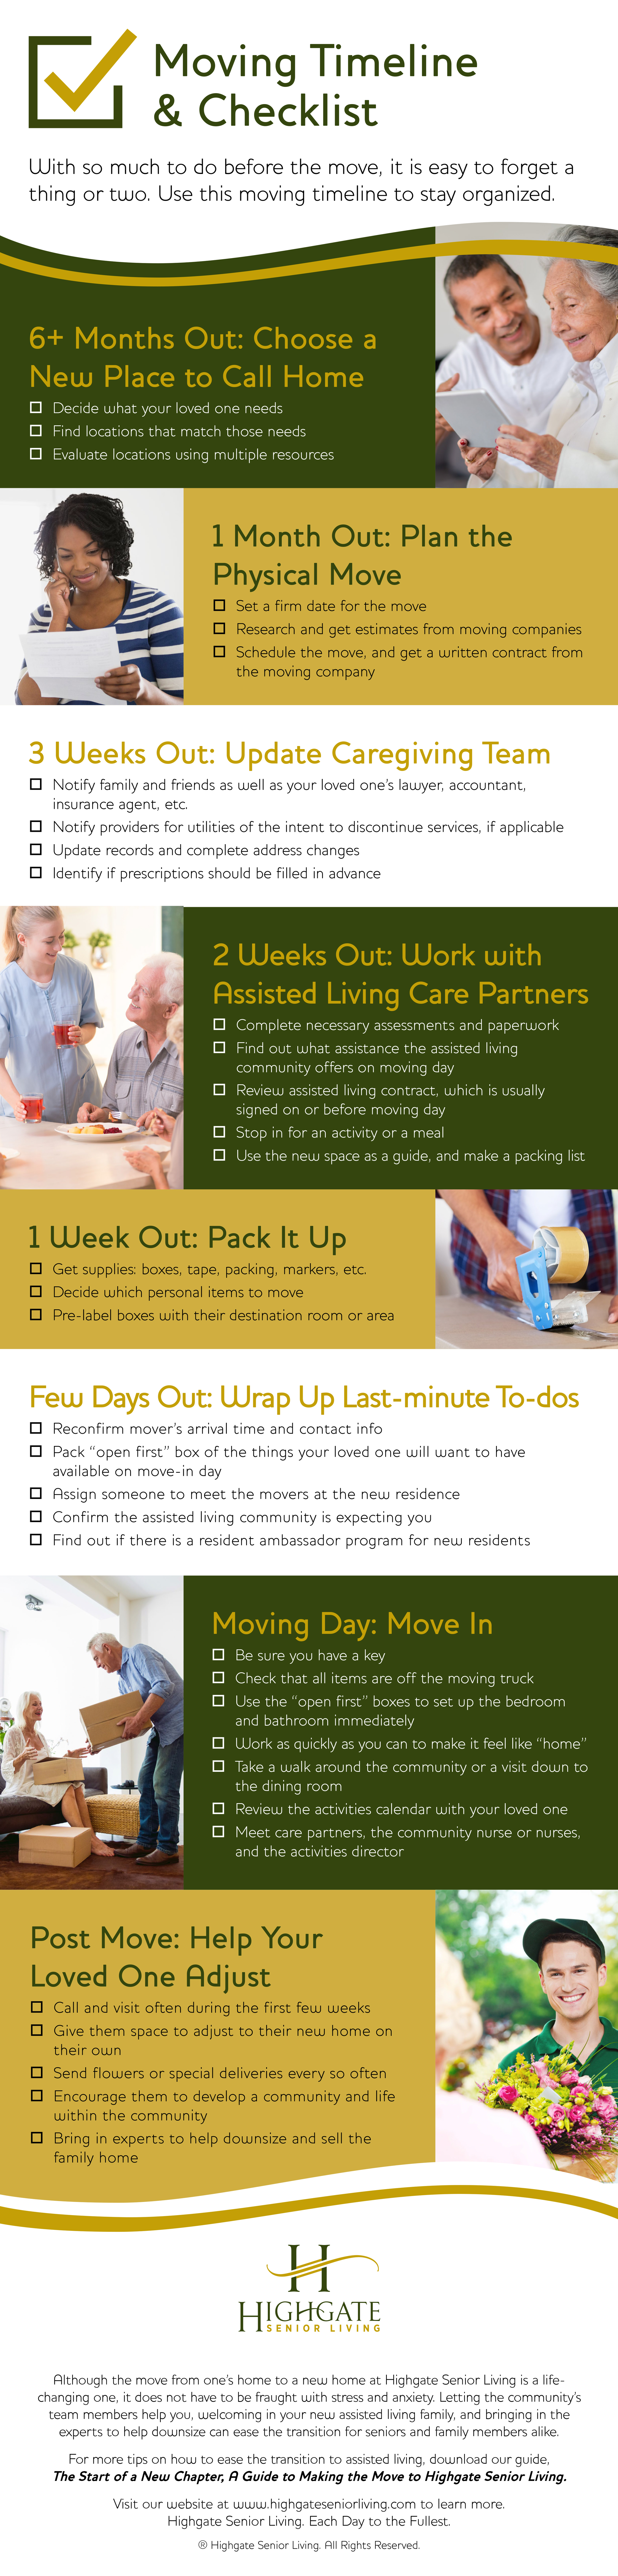 HGE-infographic-Timeline for Making the Move to Assisted Living Stress Free-v1 (1)